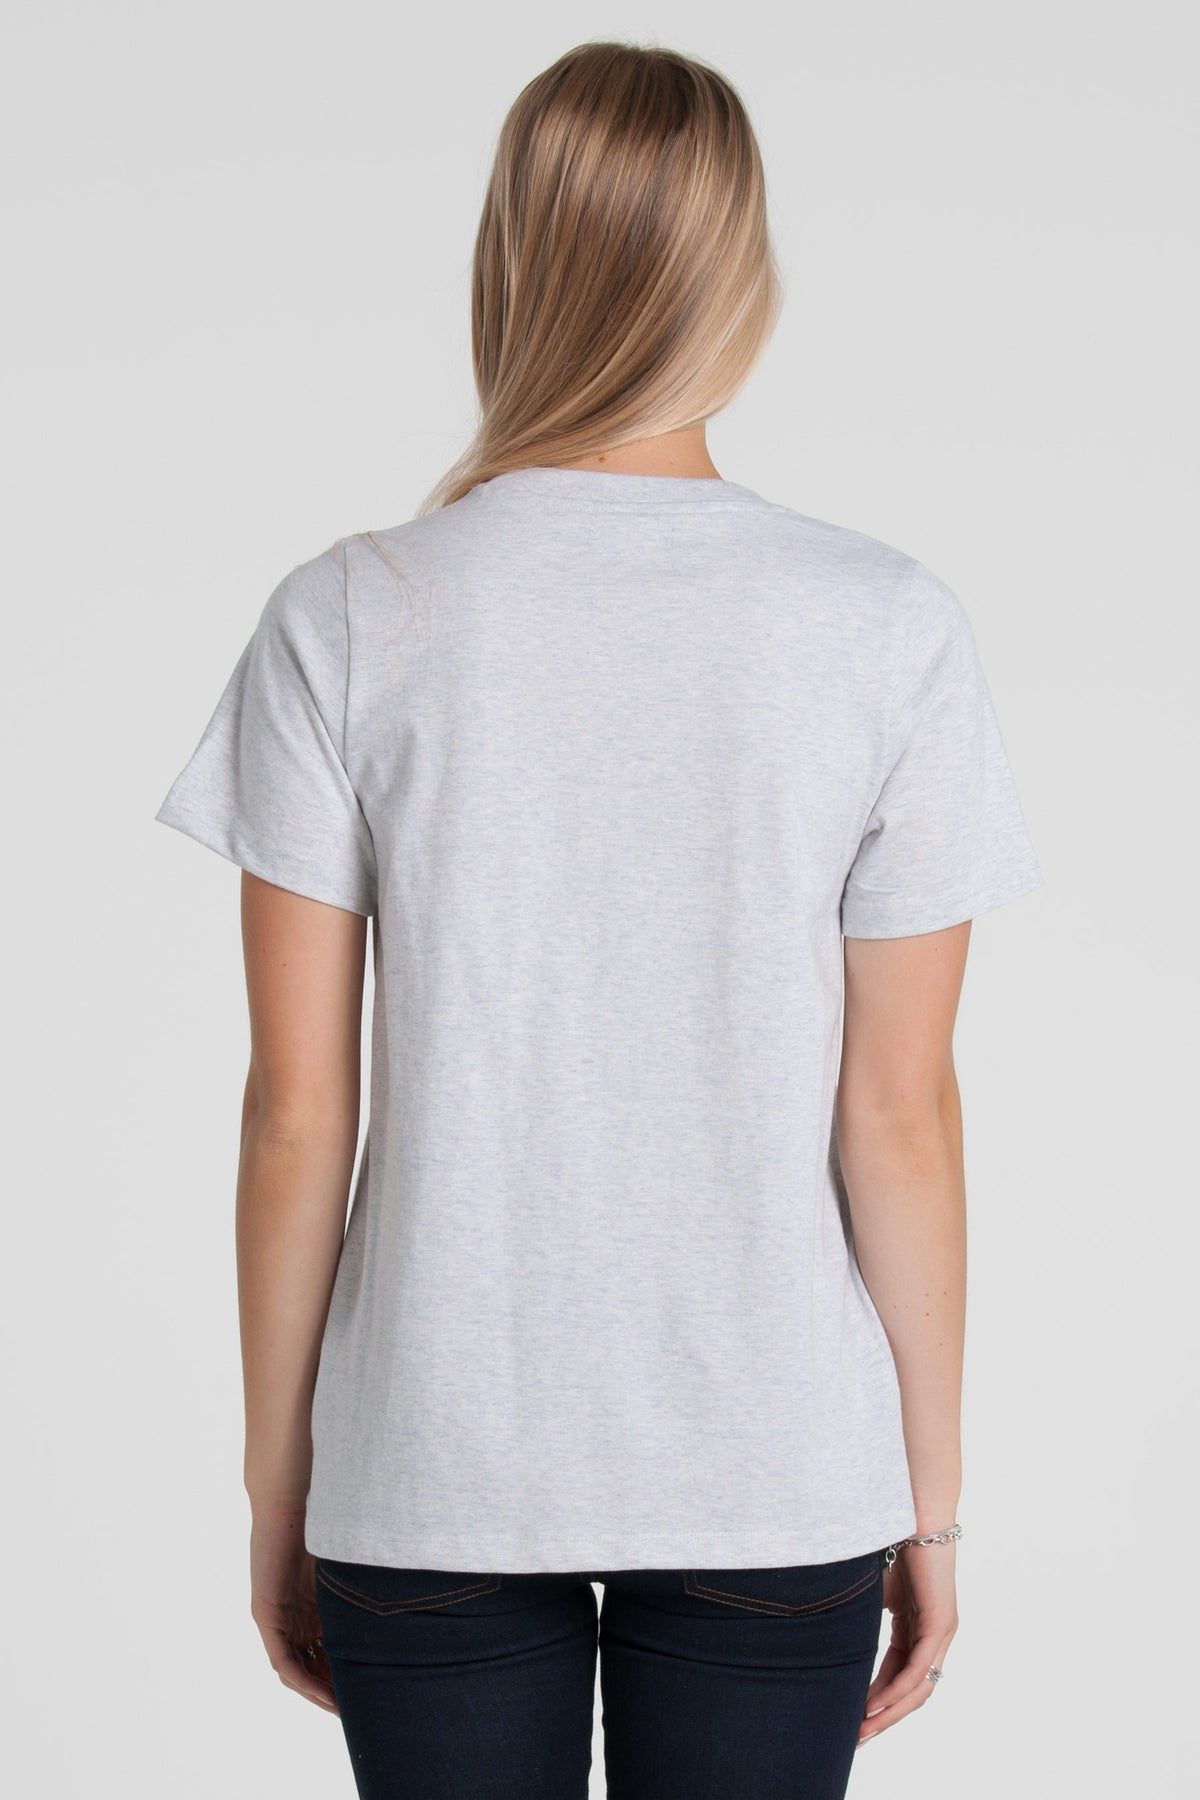 Eventide Active Tee - Silver Marle